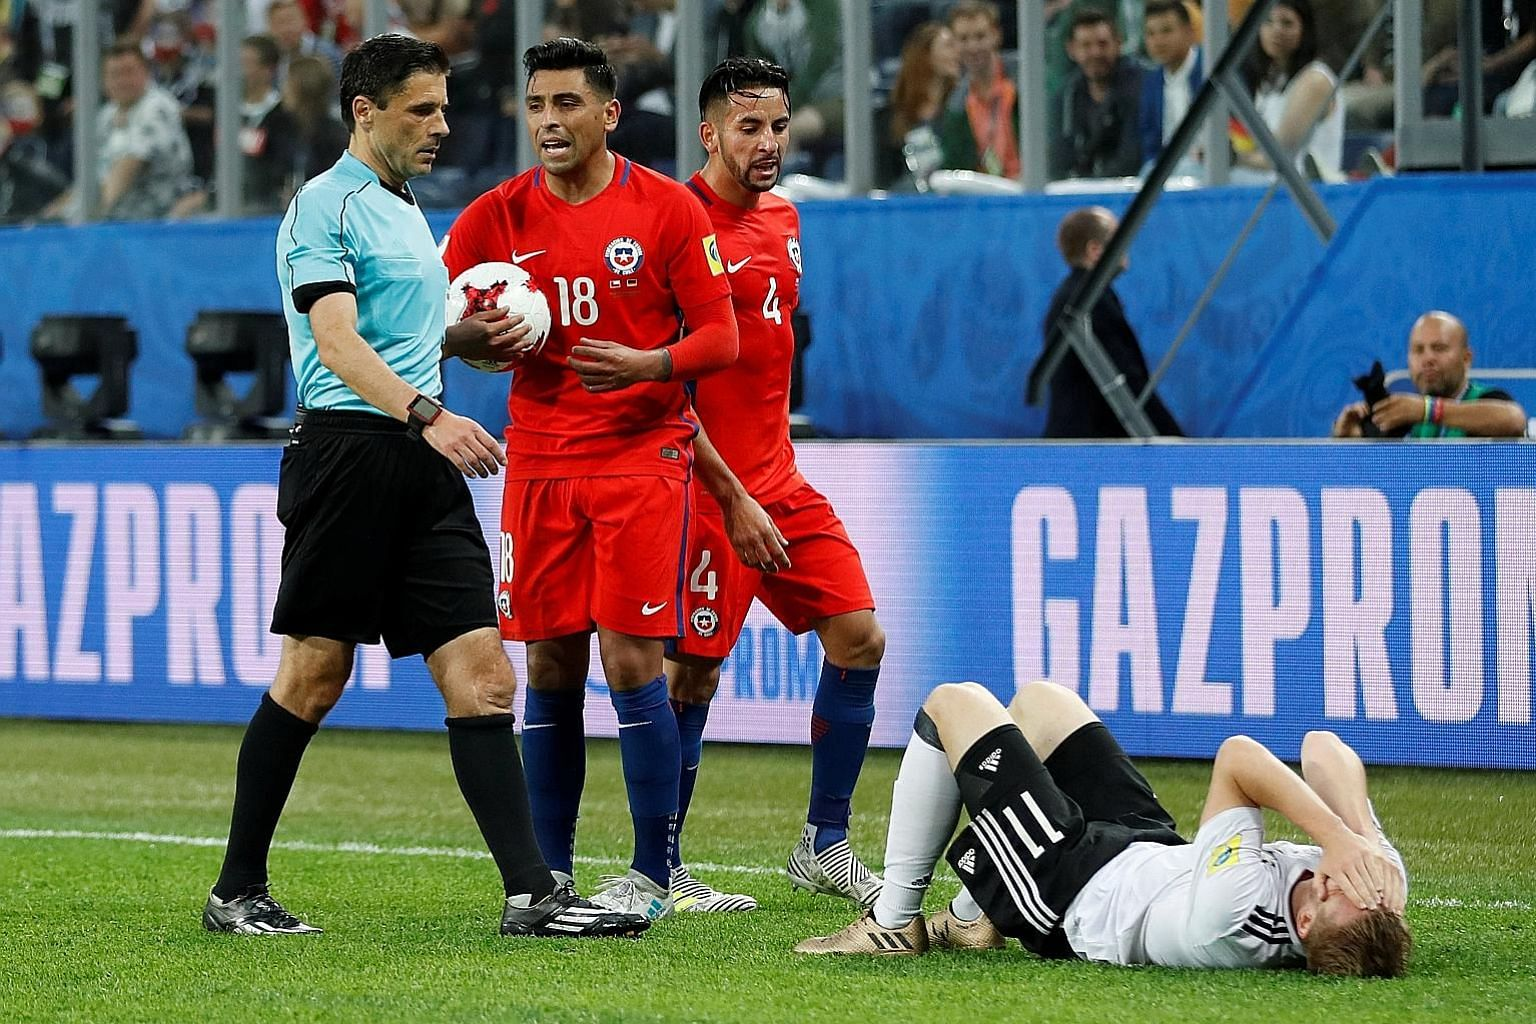 Referee Milorad Mazic ended up cautioning Chile's Gonzalo Jara (No. 18) after a video review of his challenge on Germany's Timo Werner.